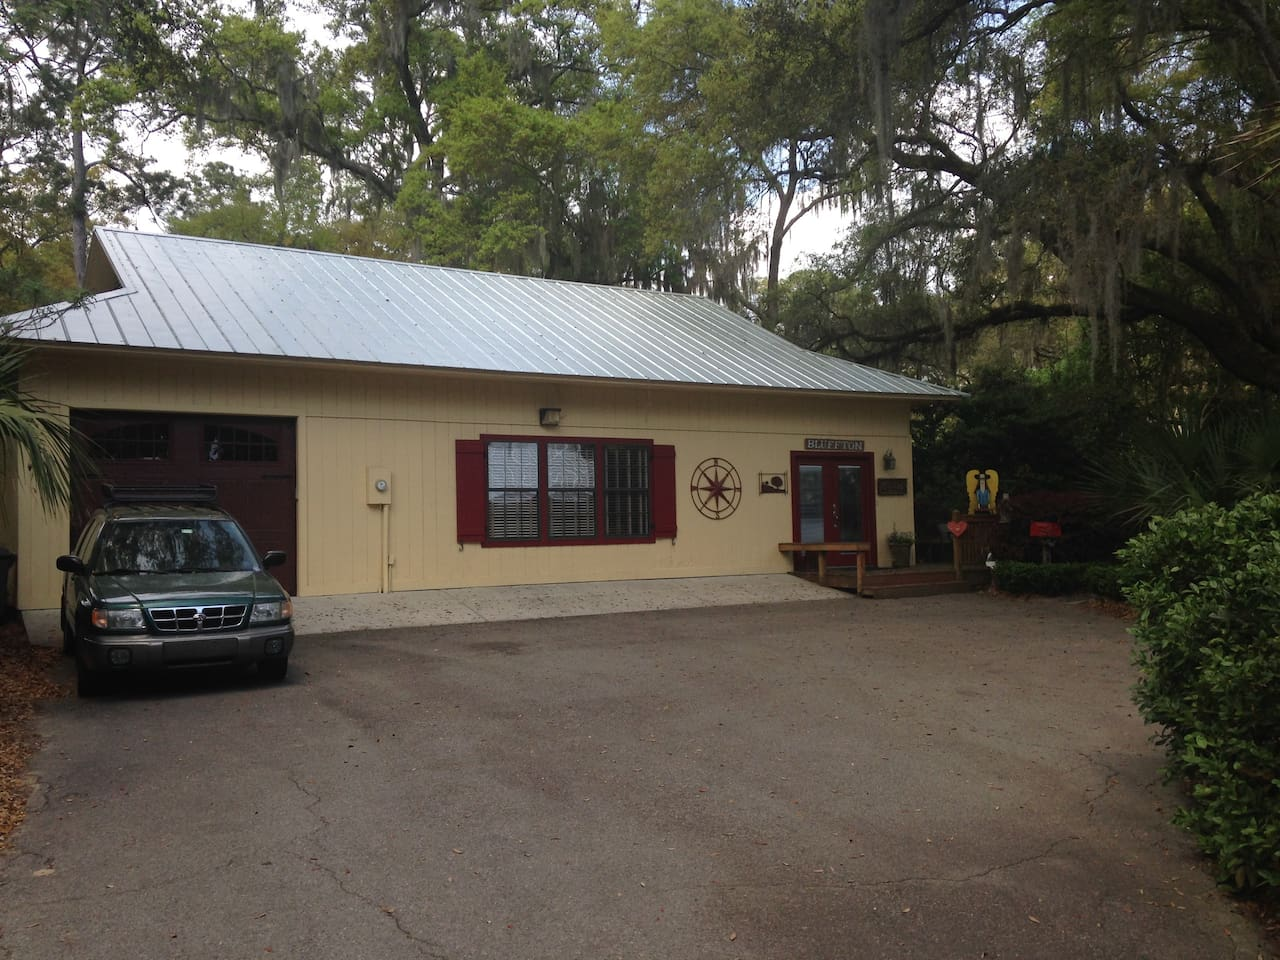 Guest House with new metal roof installed 3/31/15